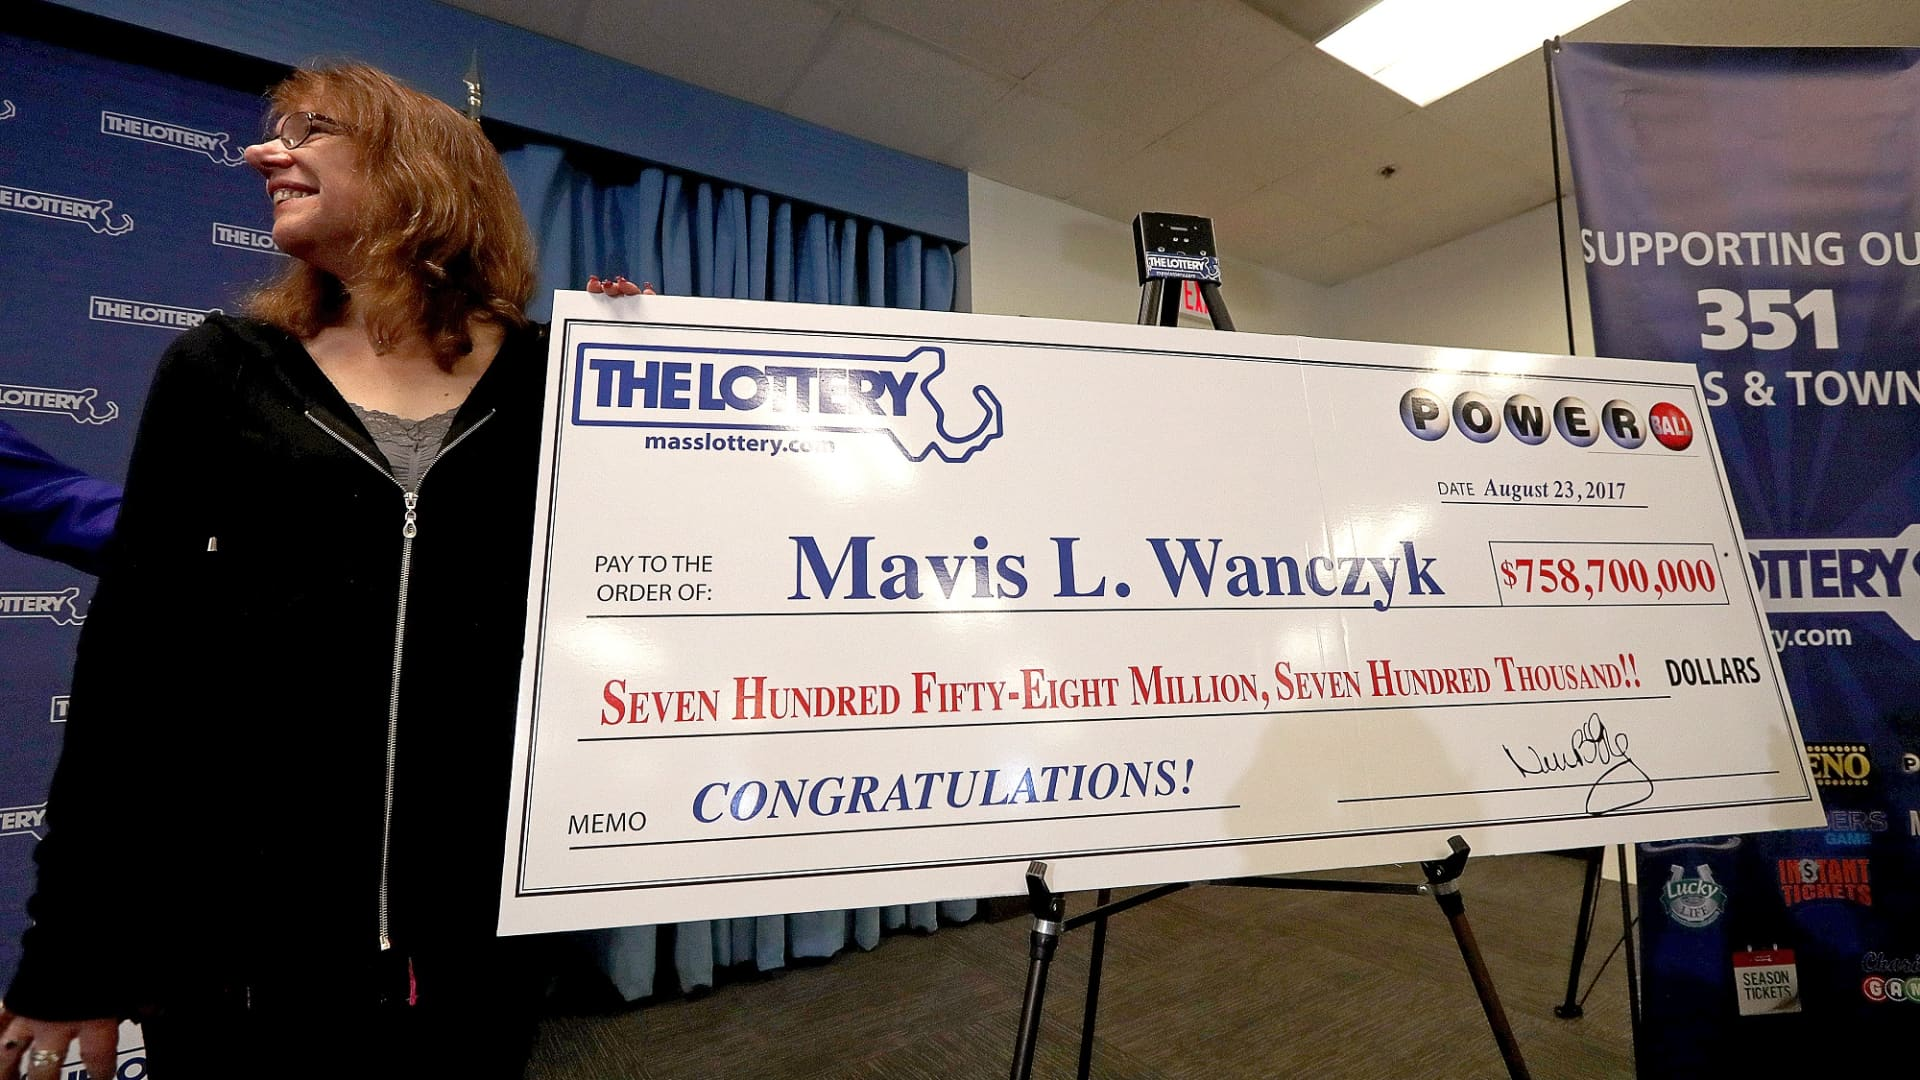 Mavis L. Wanczyk was announced as the winner of the $758.7 Million Powerball Jackpot in August of 2017.